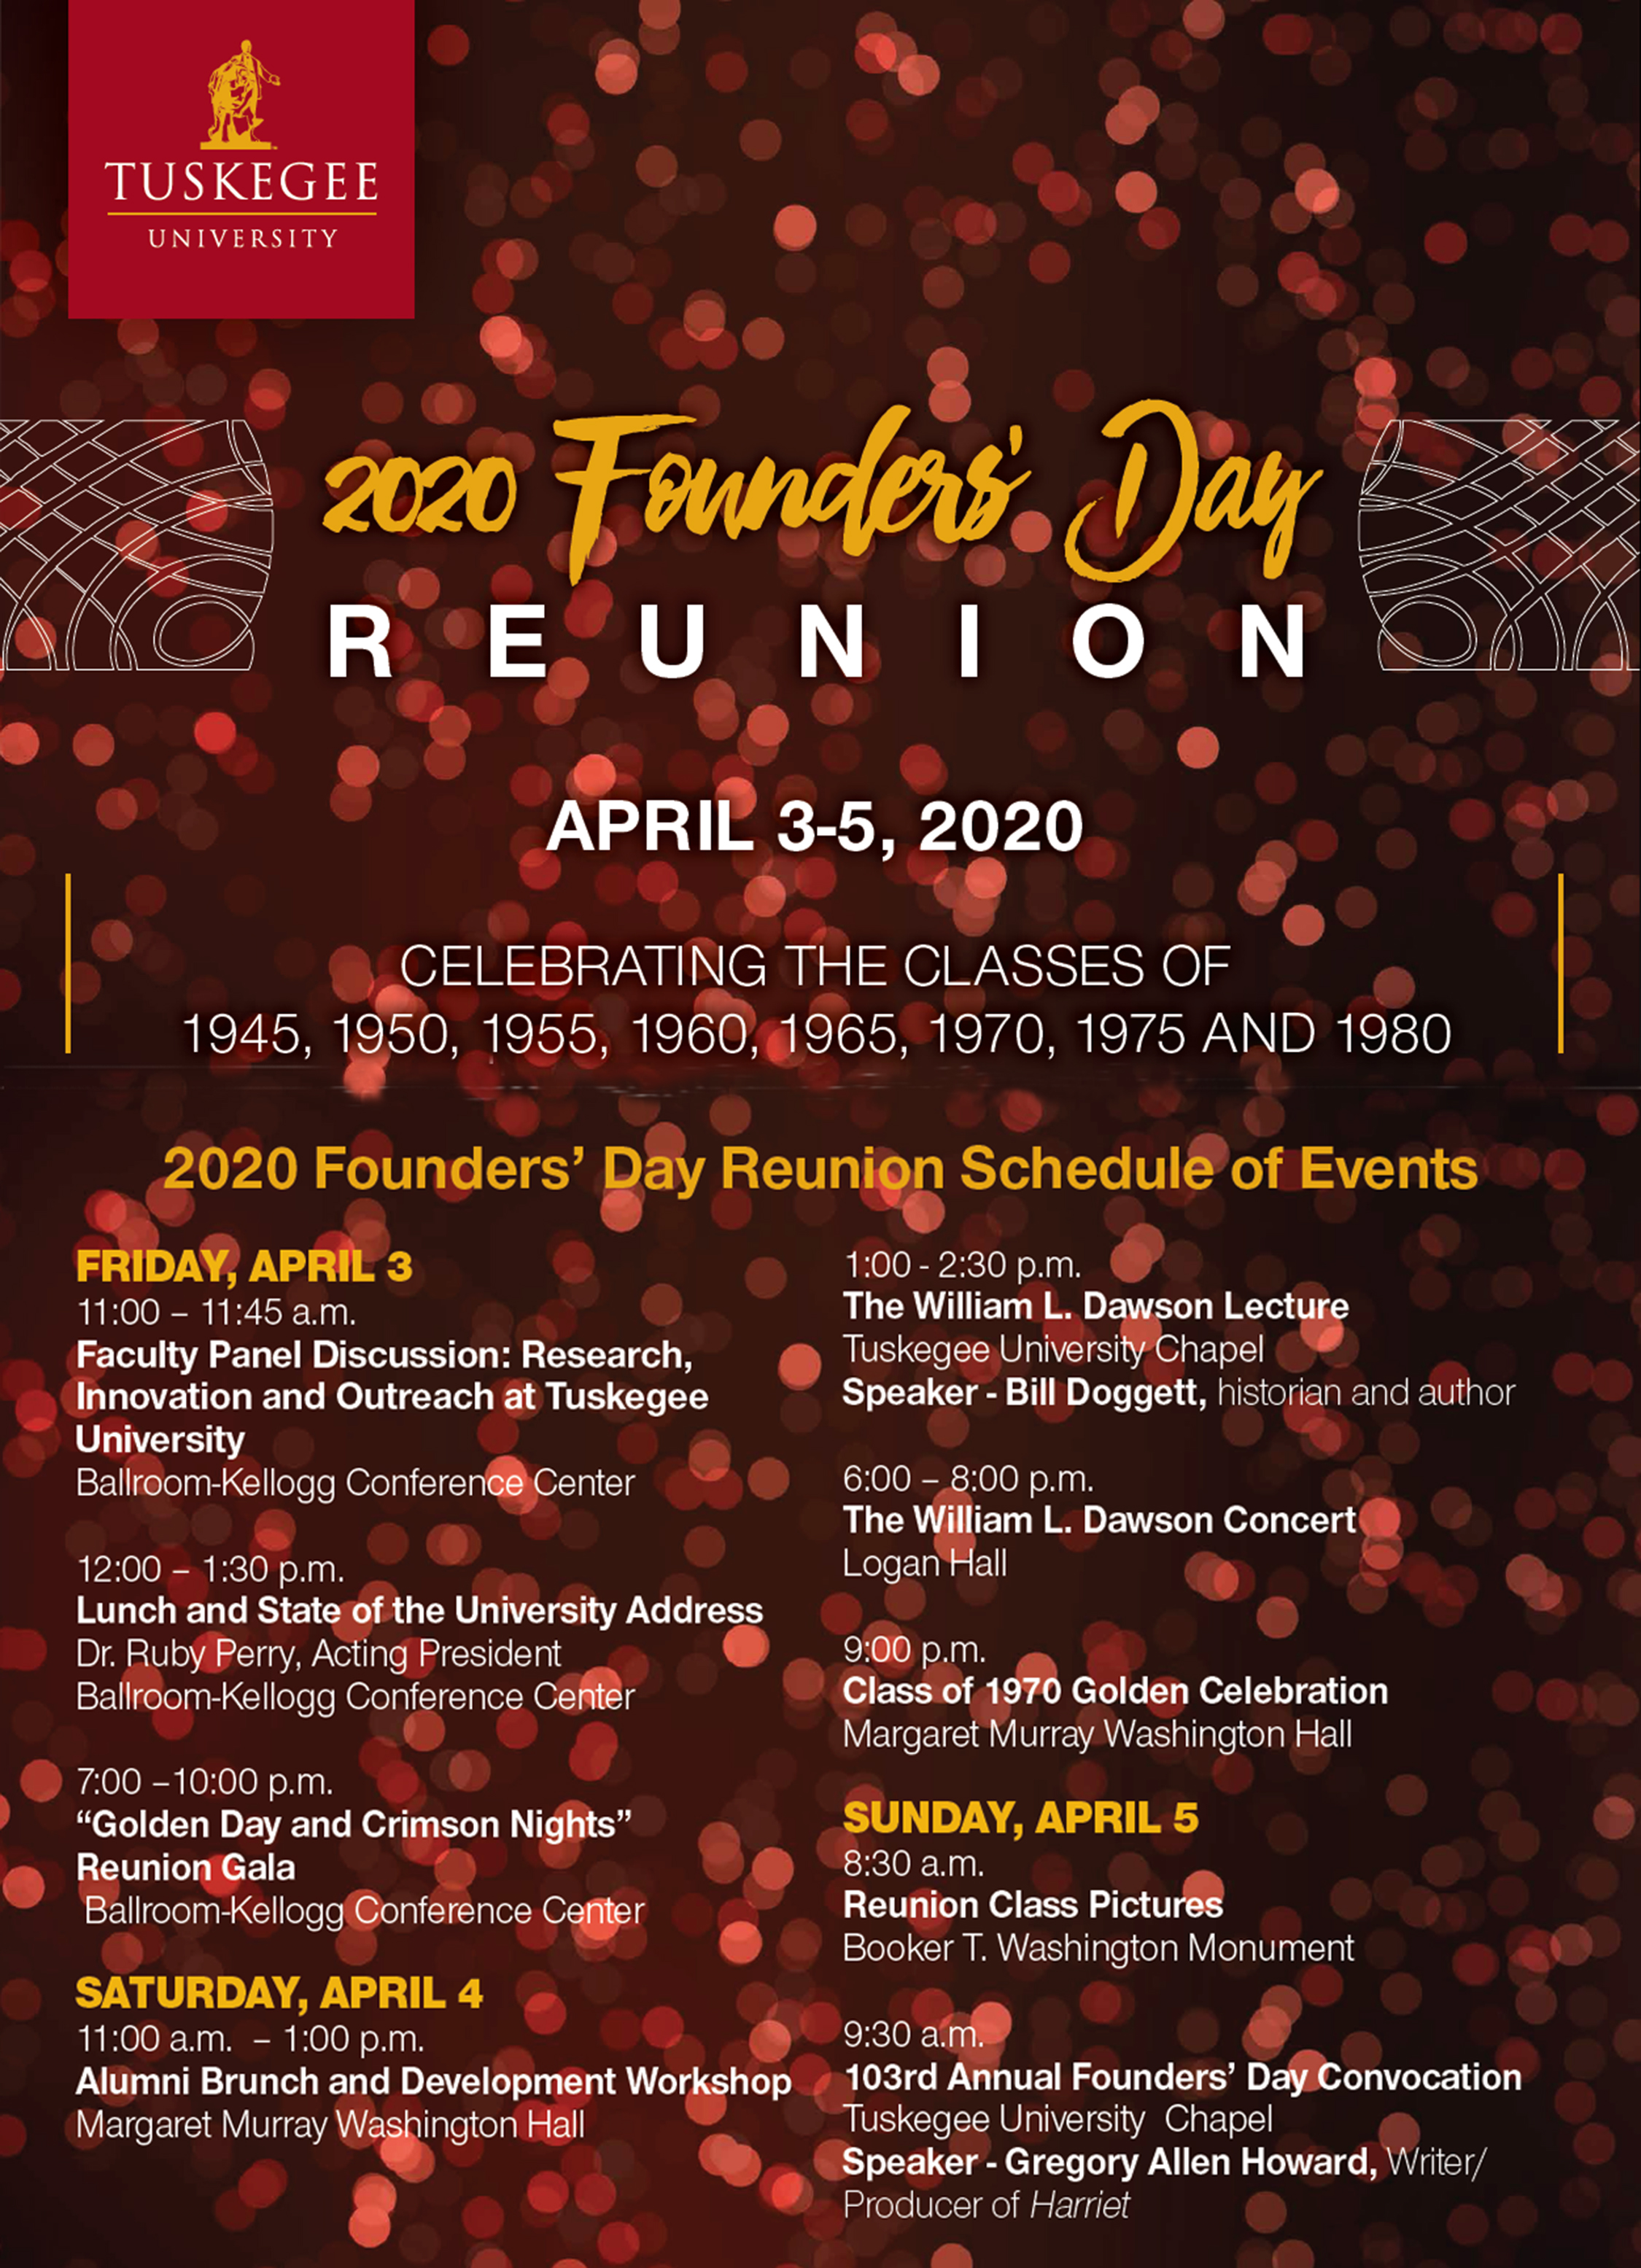 2020 Founders Day Reunion schedule